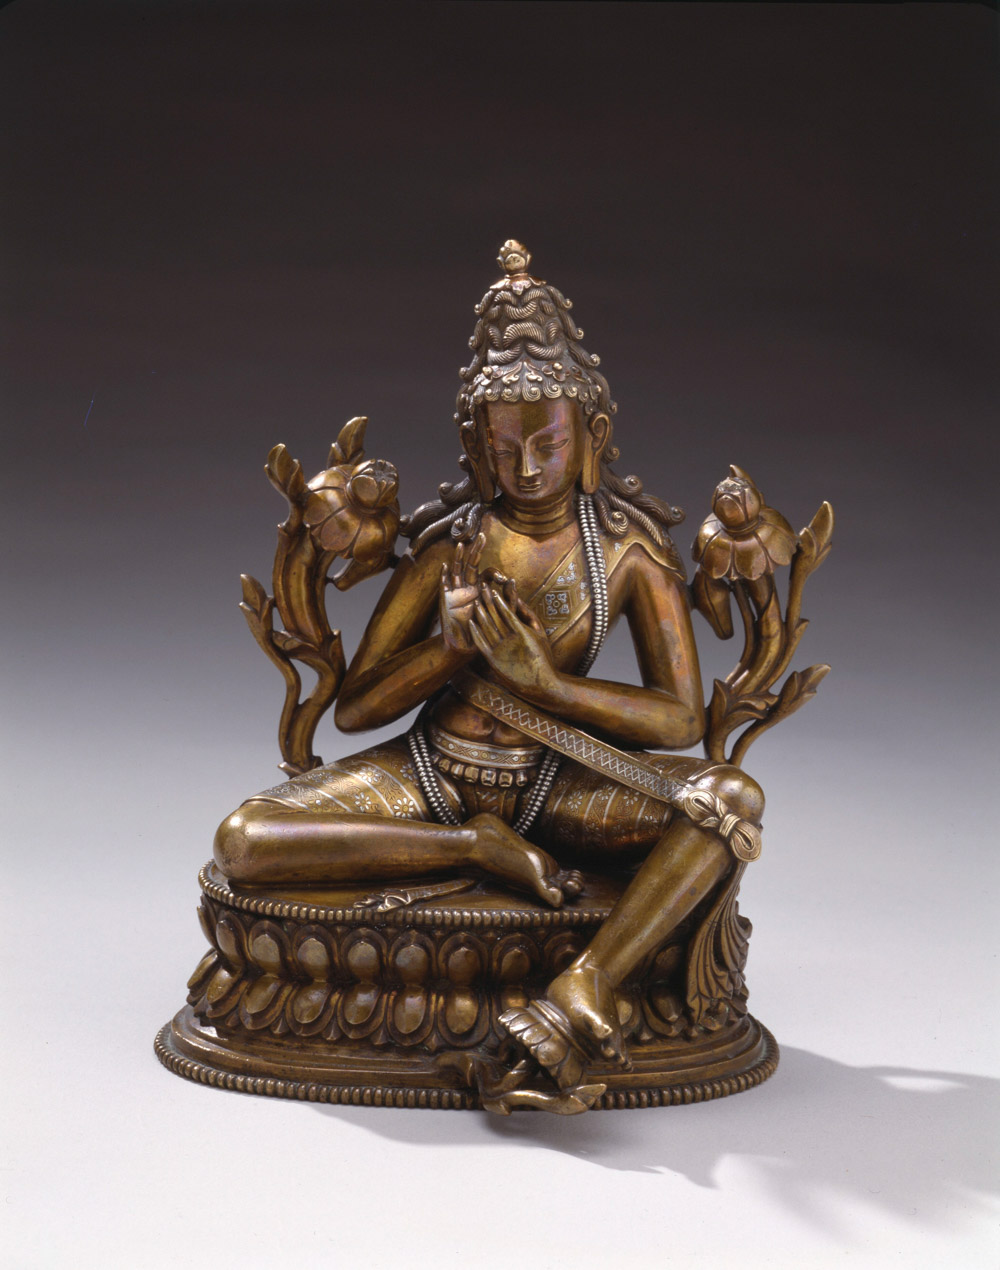 Bodhisattva with meditation belt. Tibet, 2nd half of the 13th century. Copper-alloy with silver and gold inlay. Credit: Collection of the Newark Museum 79.442.